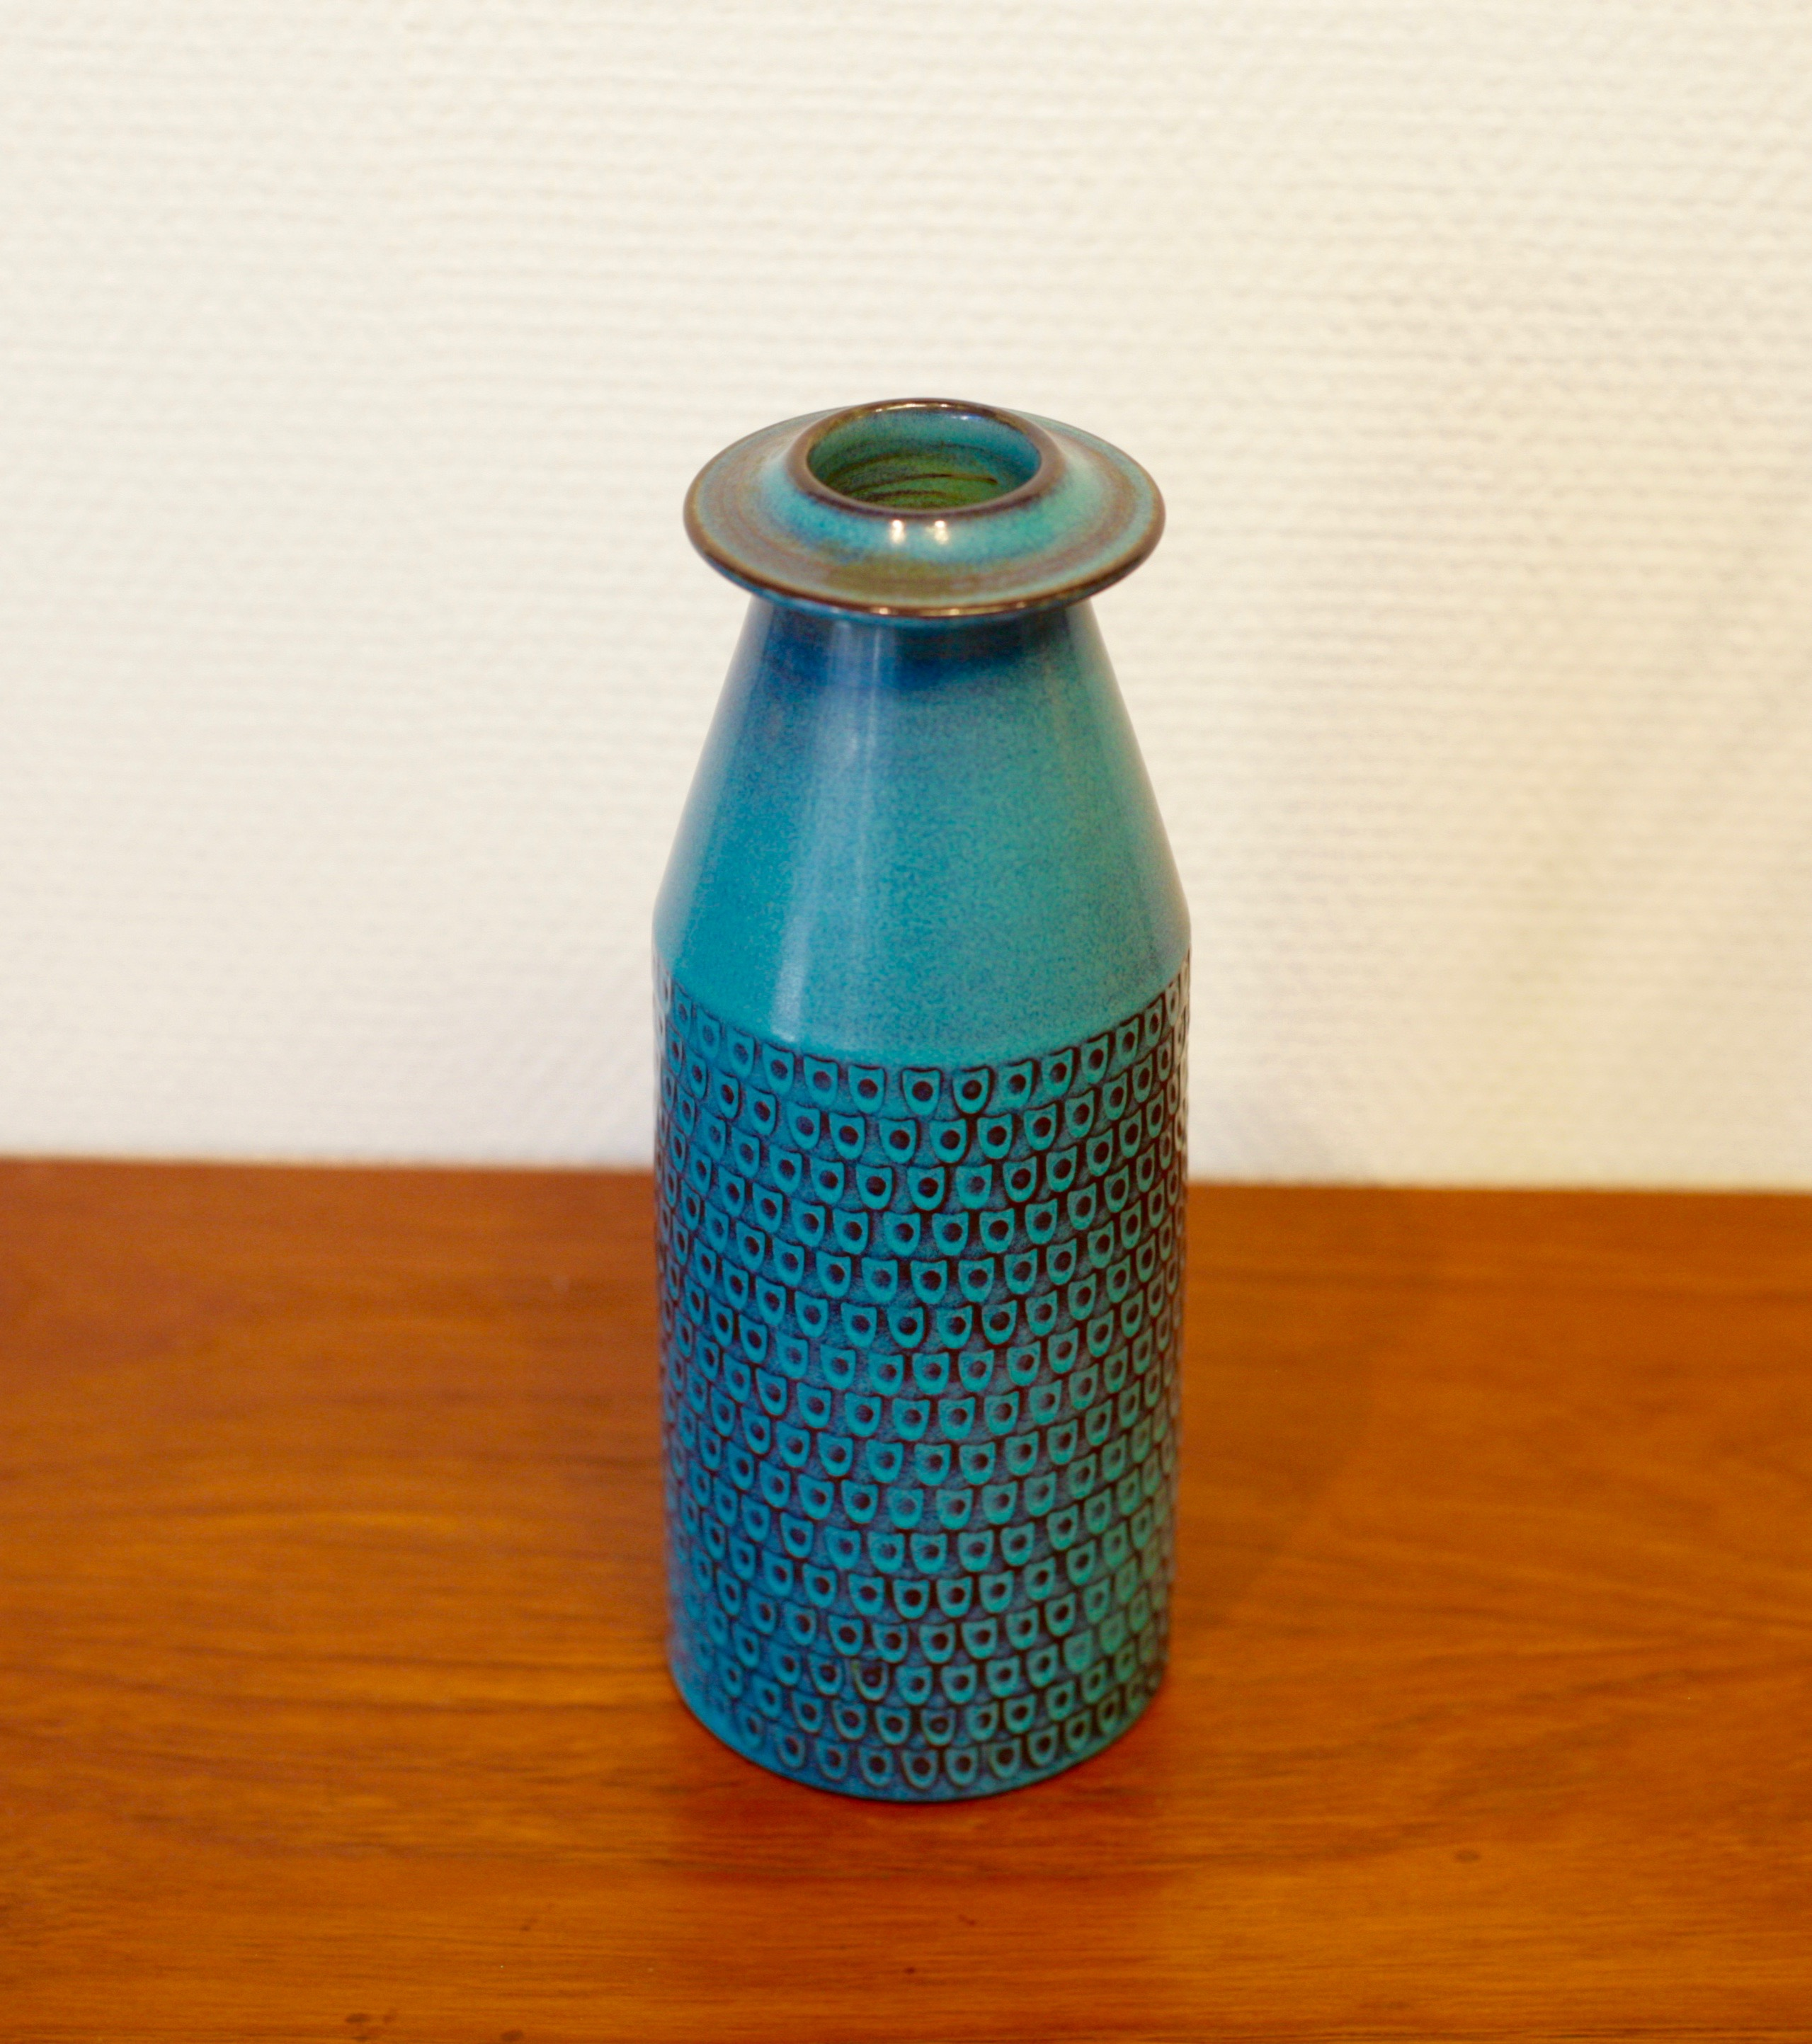 Ceramic vase by Stig Lindberg for Gustavsberg